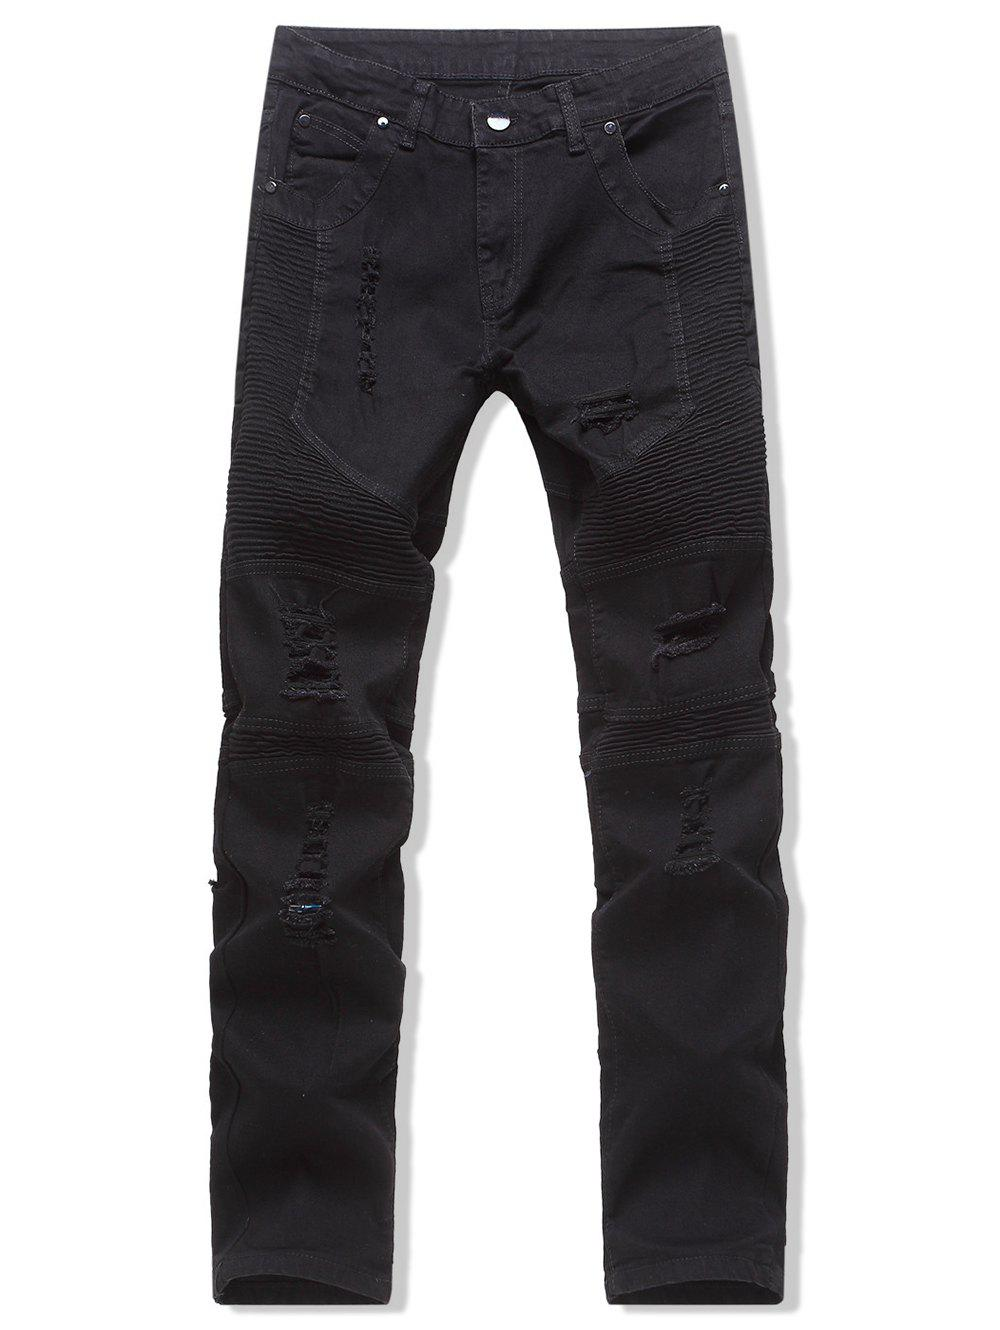 Affordable Leisure Style Destroy Design Jeans